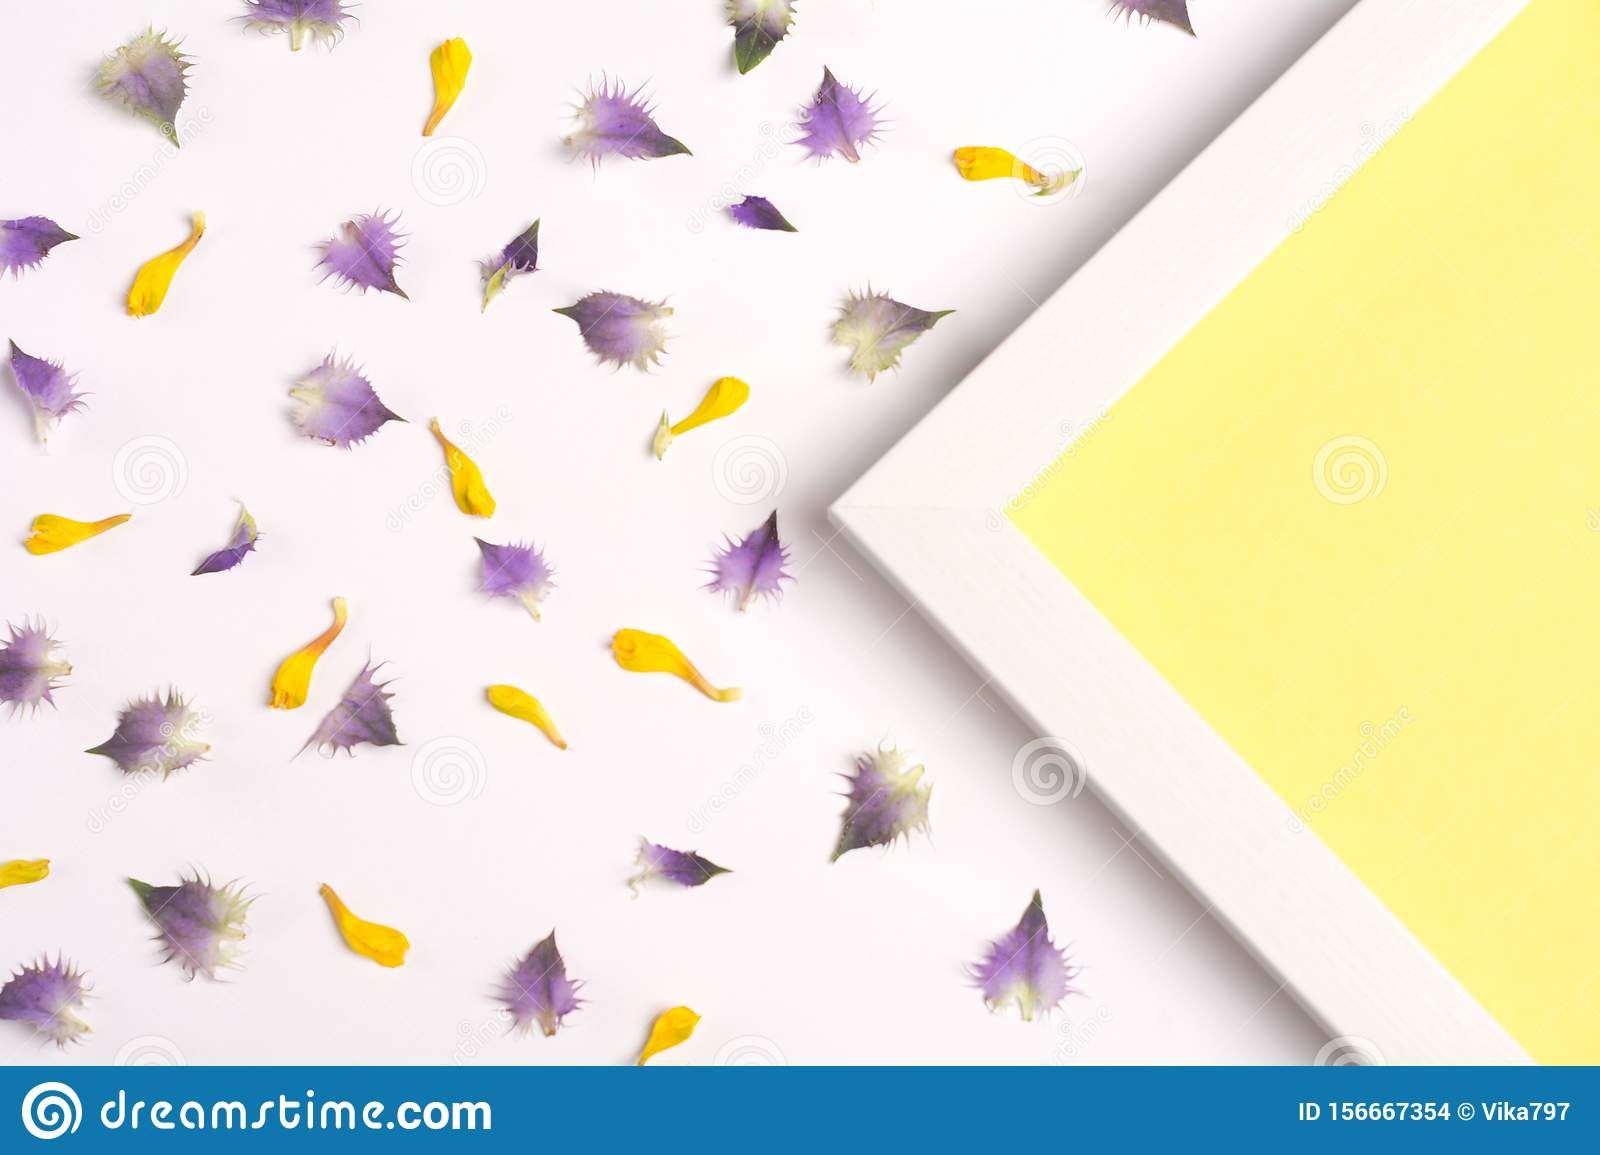 Yellow and violet petals and yellow triangle on a white background.